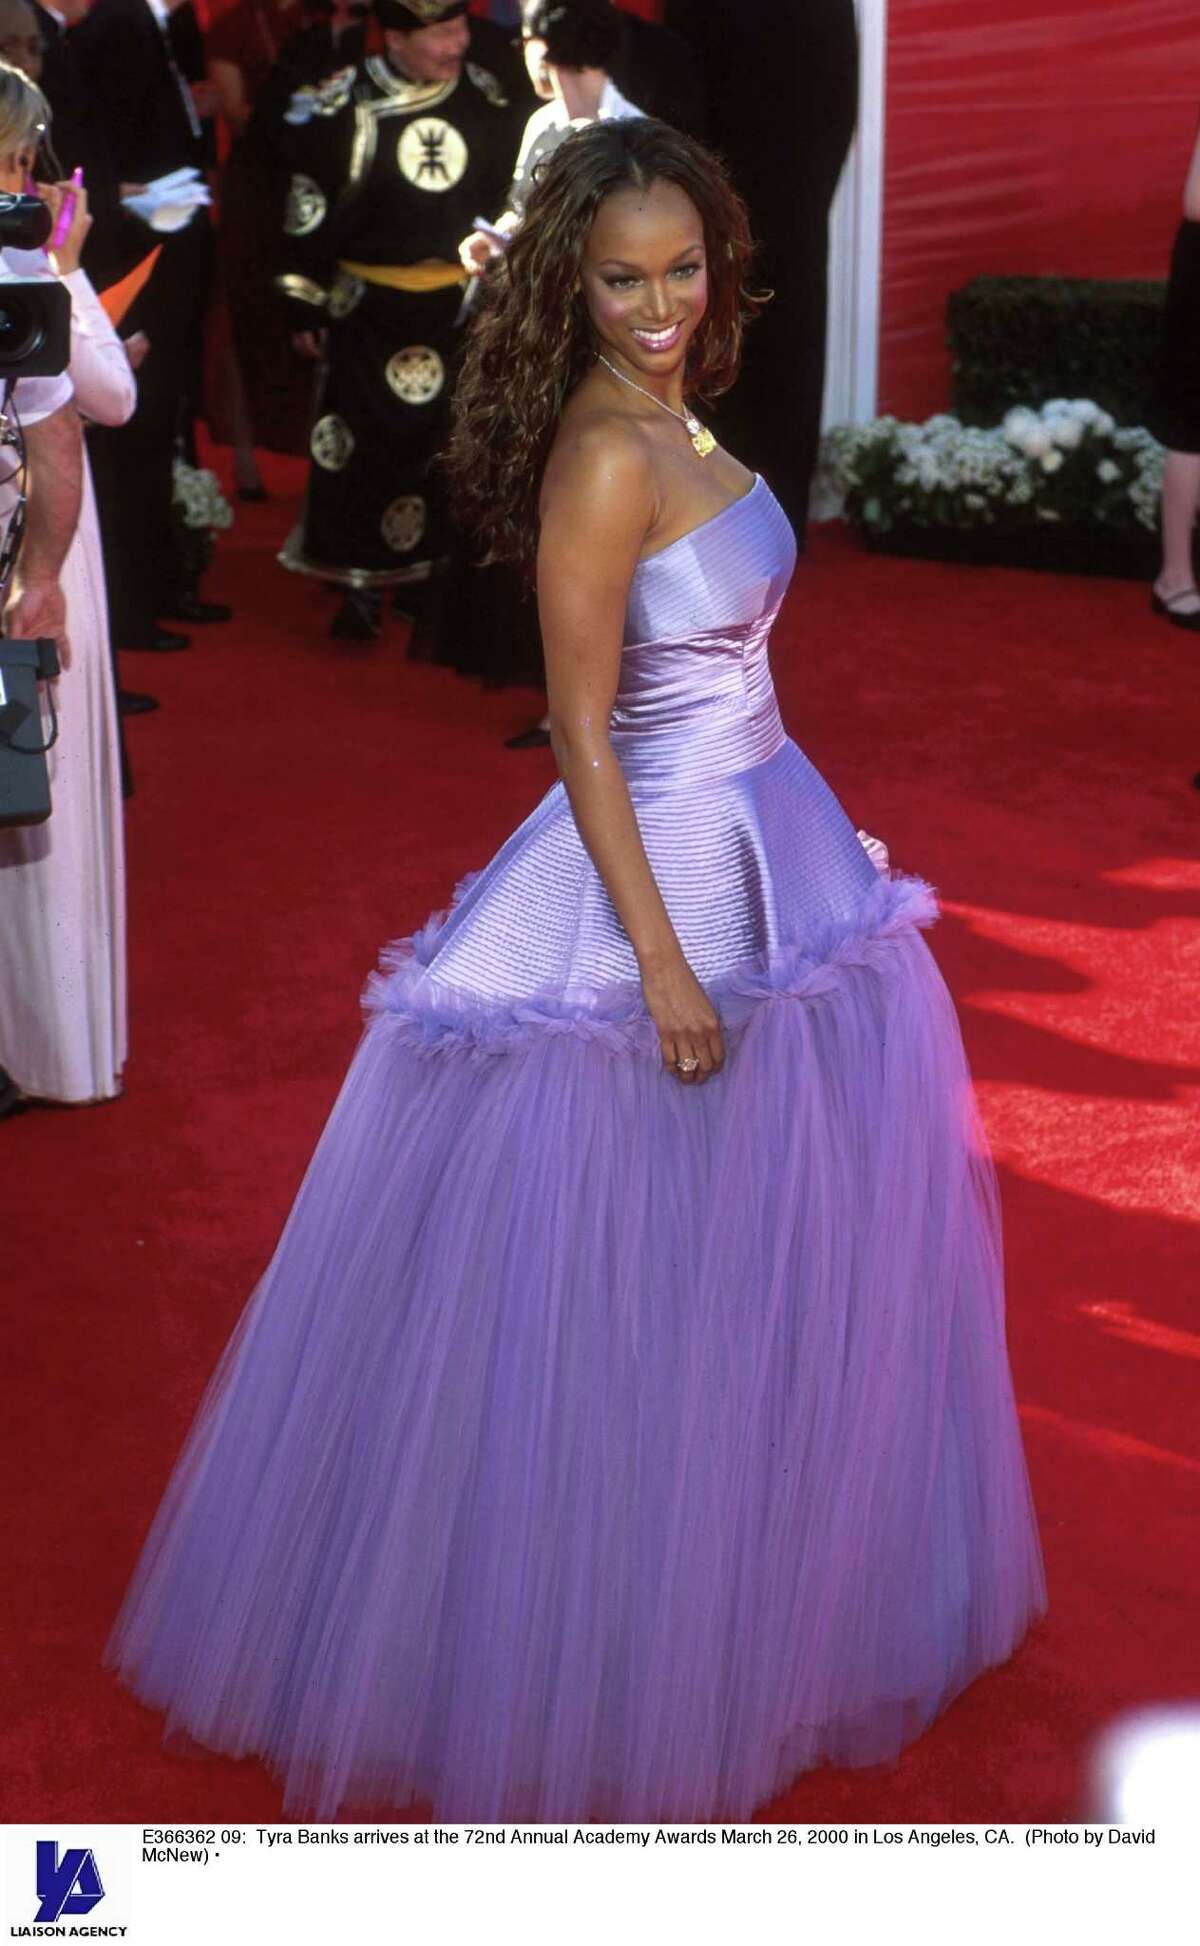 8. Tyra Banks, 2000 America's ex-top model - in a purple Vera Wang tulle gown - thought she was headed to her own quinceanera, not the Oscars. Boom!